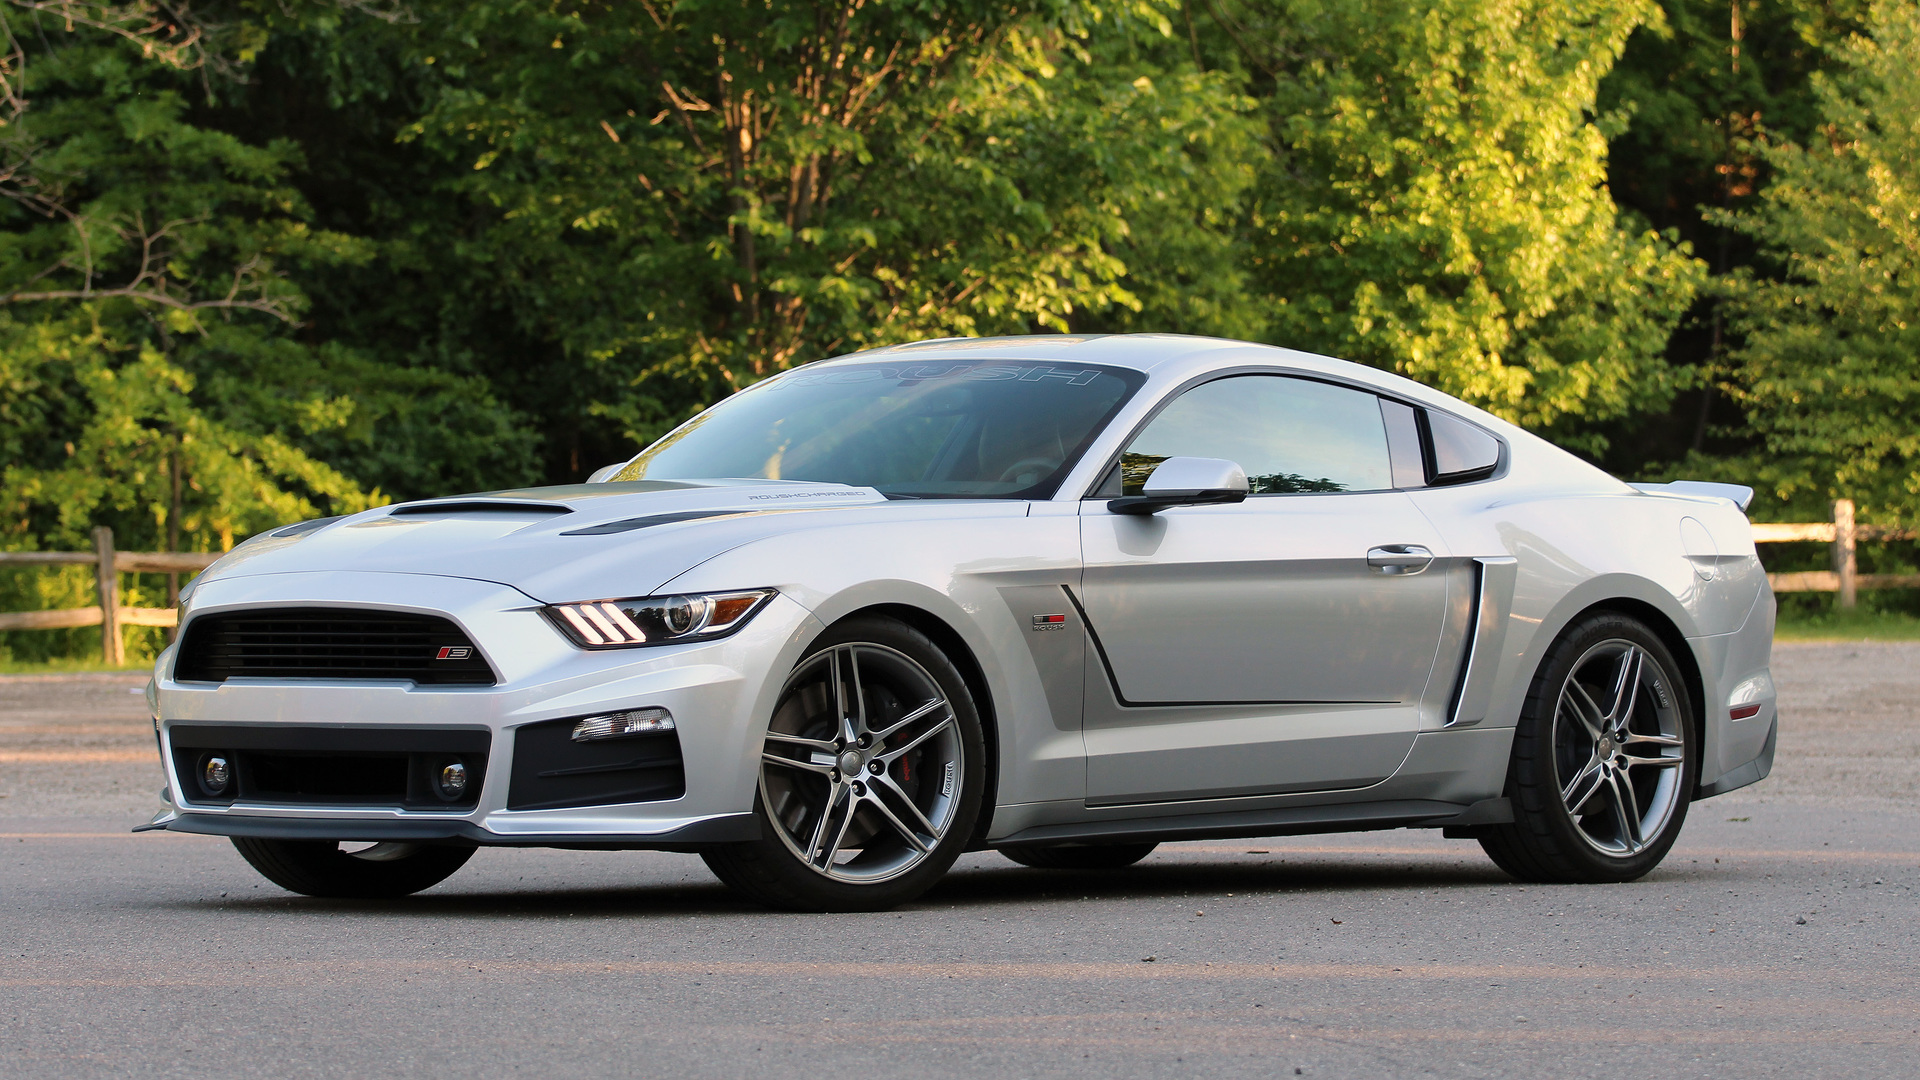 First Drive: 2016 Roush Stage 3 Mustang